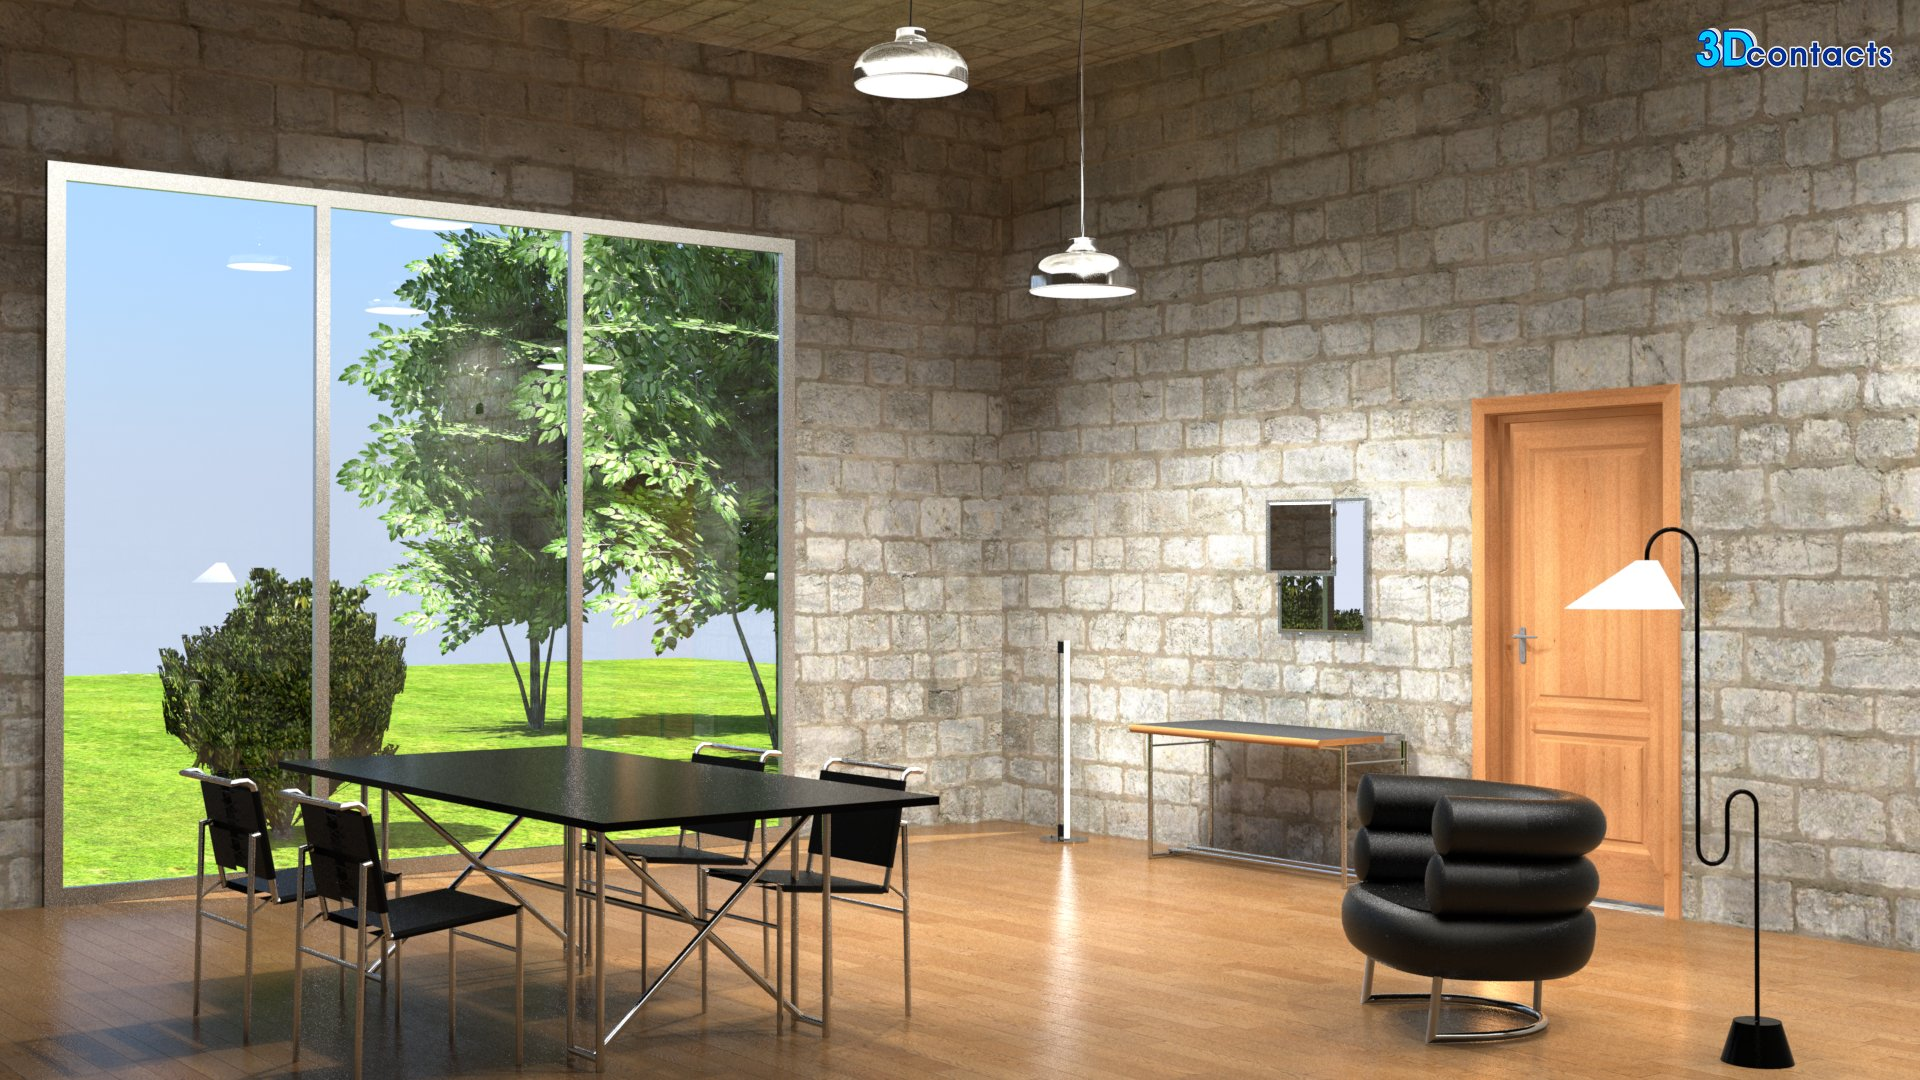 charles eames lounge chair best travel beach 3d contacts - exemples grand format d'images virtuelles